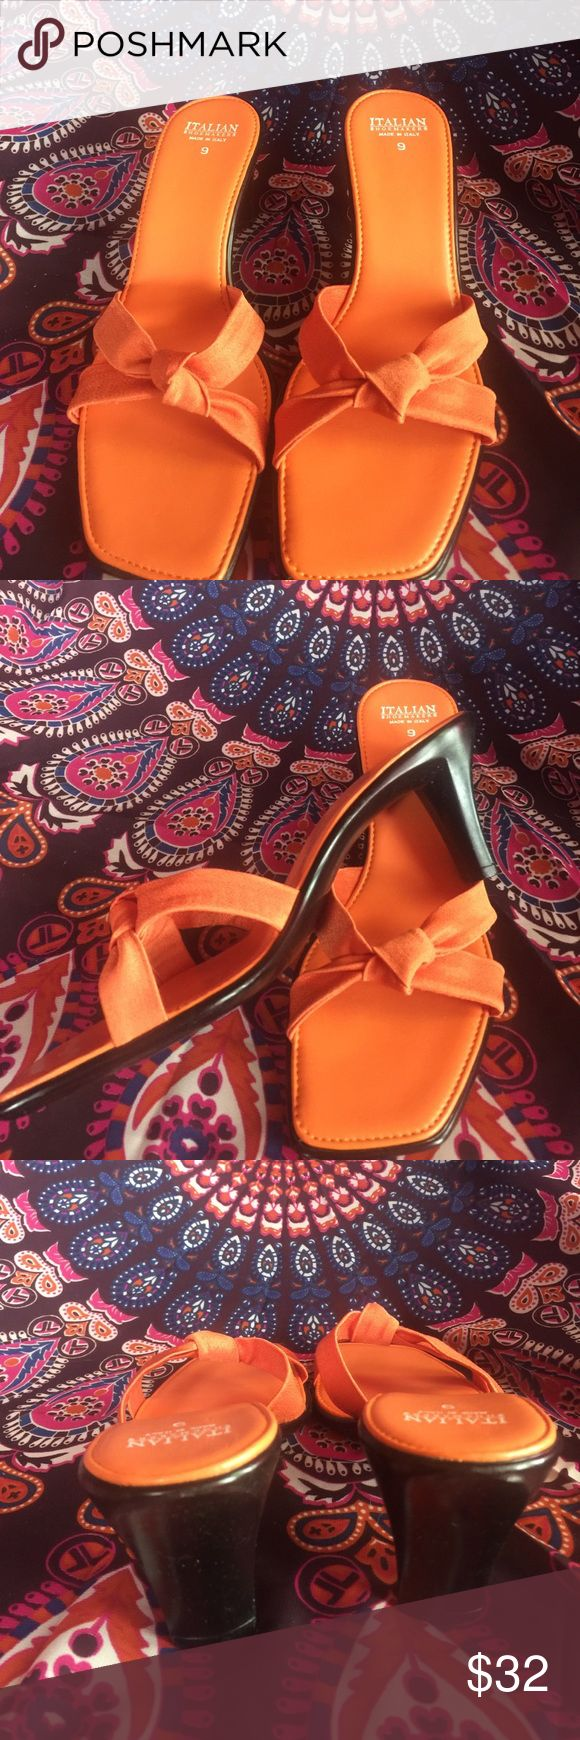 Women's size 9 orange heeled slip on sandals Gorgeous never worn slip on heeled sandals. These are woman's ITALIAN  SHOEMAKERS brand from Italy. A very nice orange color makes these such fashionable shoes. Any questions please feel free to contact me. ITALIAN SHOEMAKERS Shoes Sandals